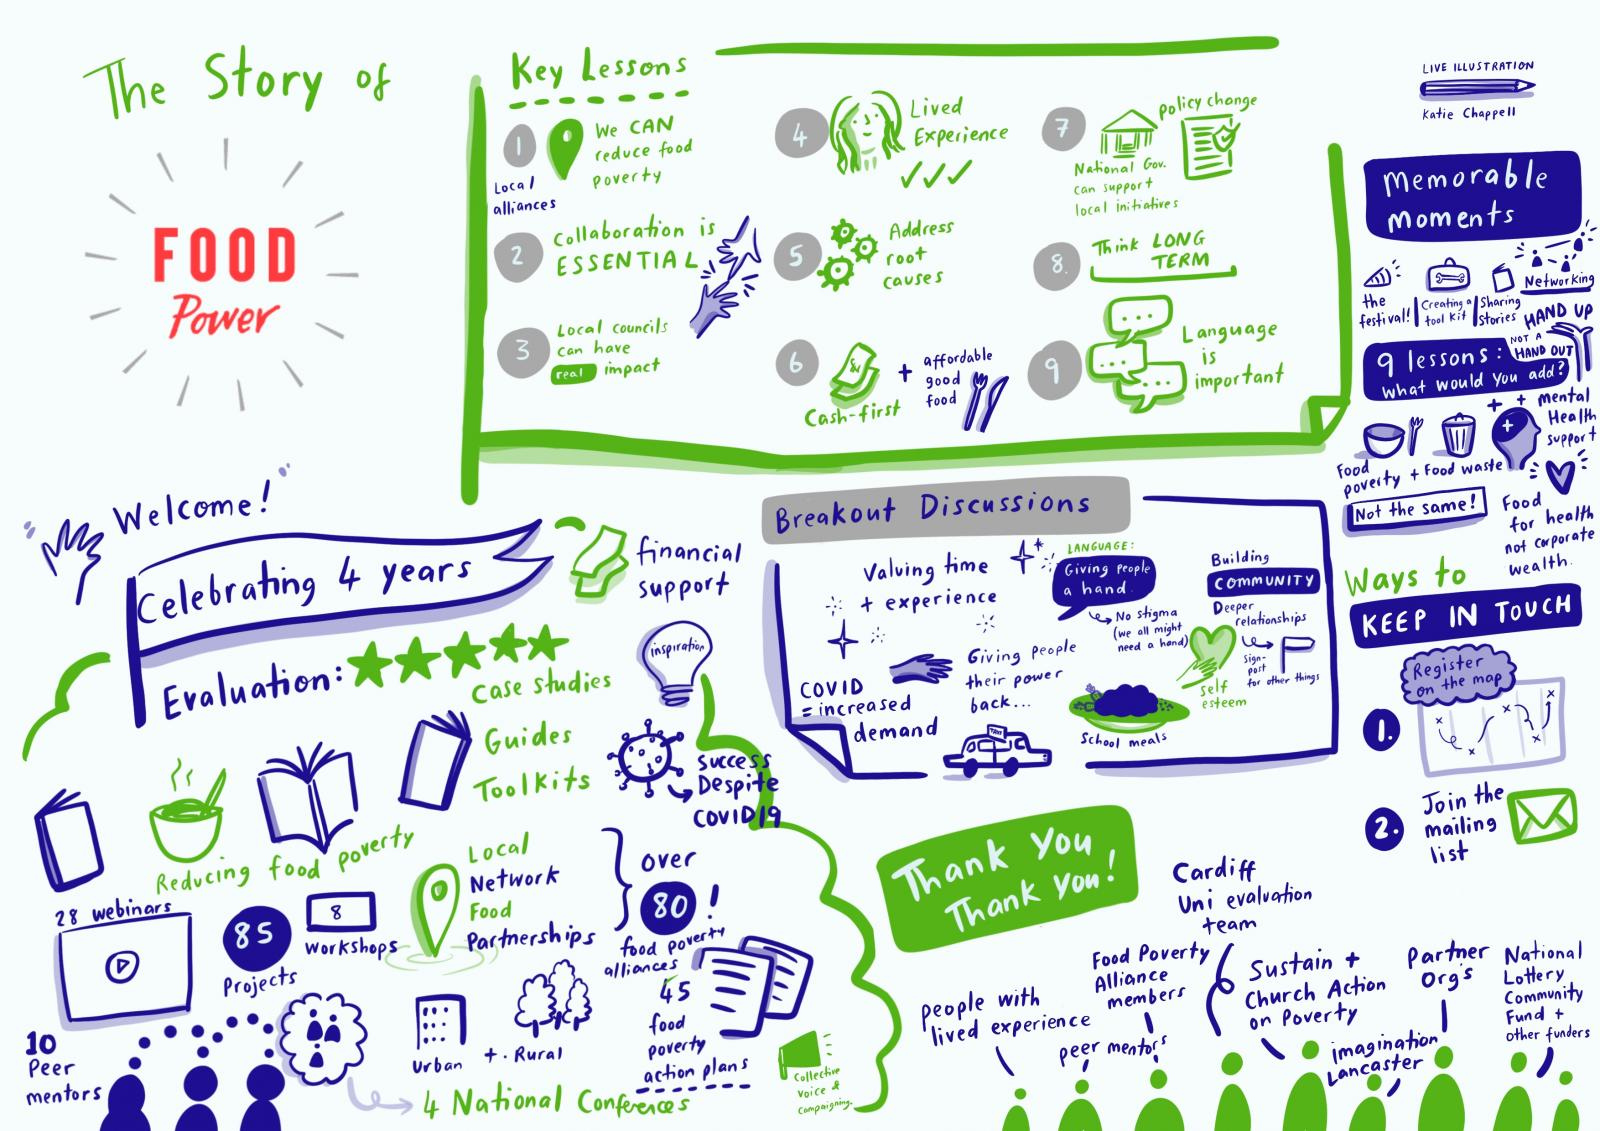 Here's a summary for you from Katie Chappell, who live scribed the Food Power session